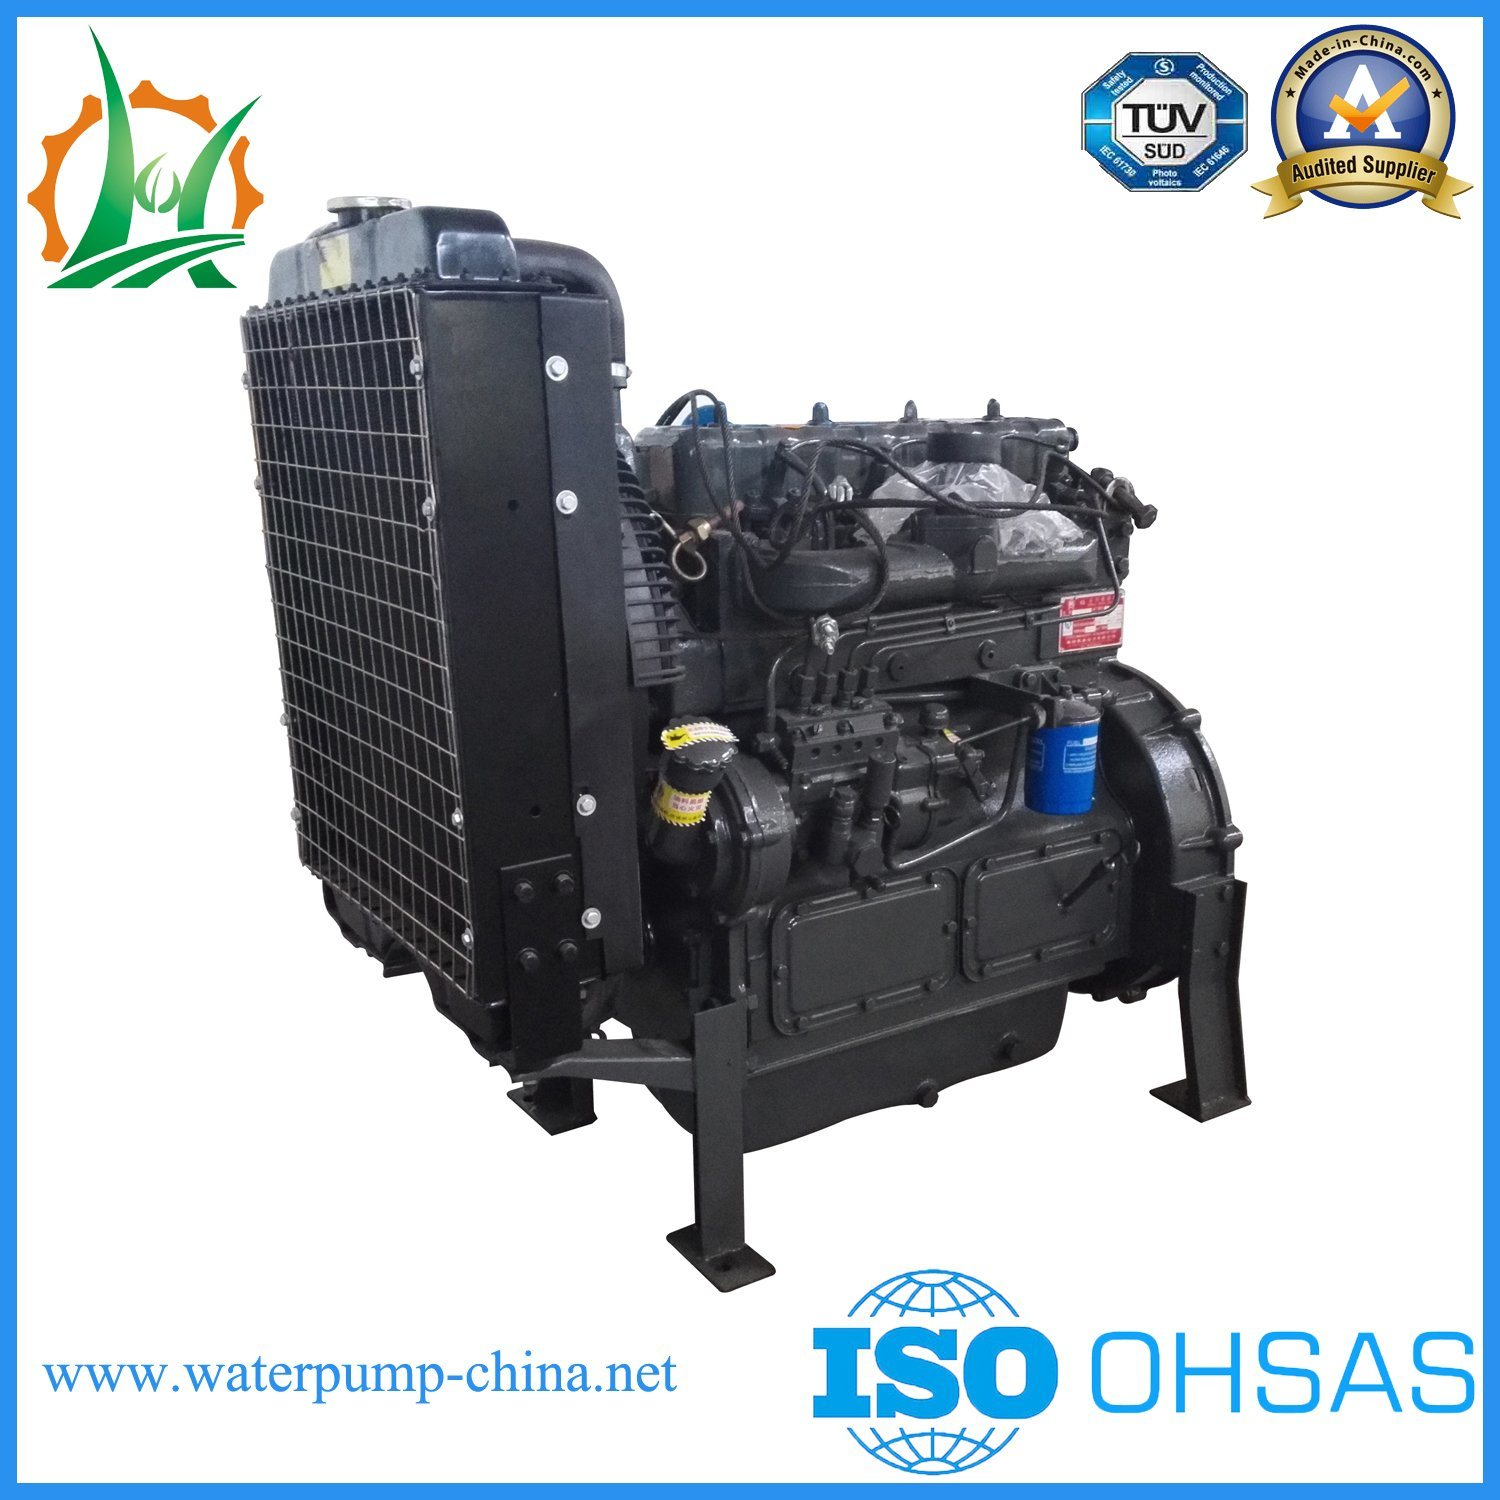 Dewatering Sewage Pump with Integral Fuel Tank